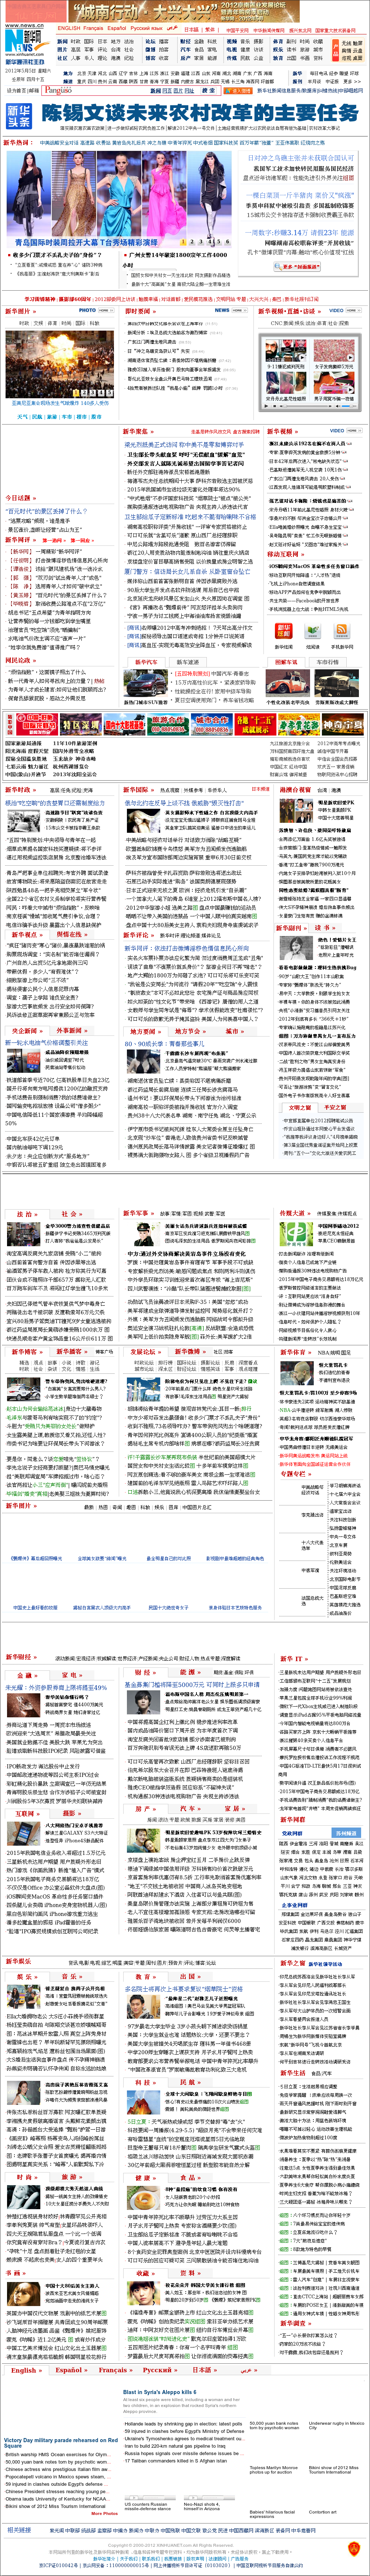 Xinhua at Saturday May 5, 2012, 11:14 a.m. UTC